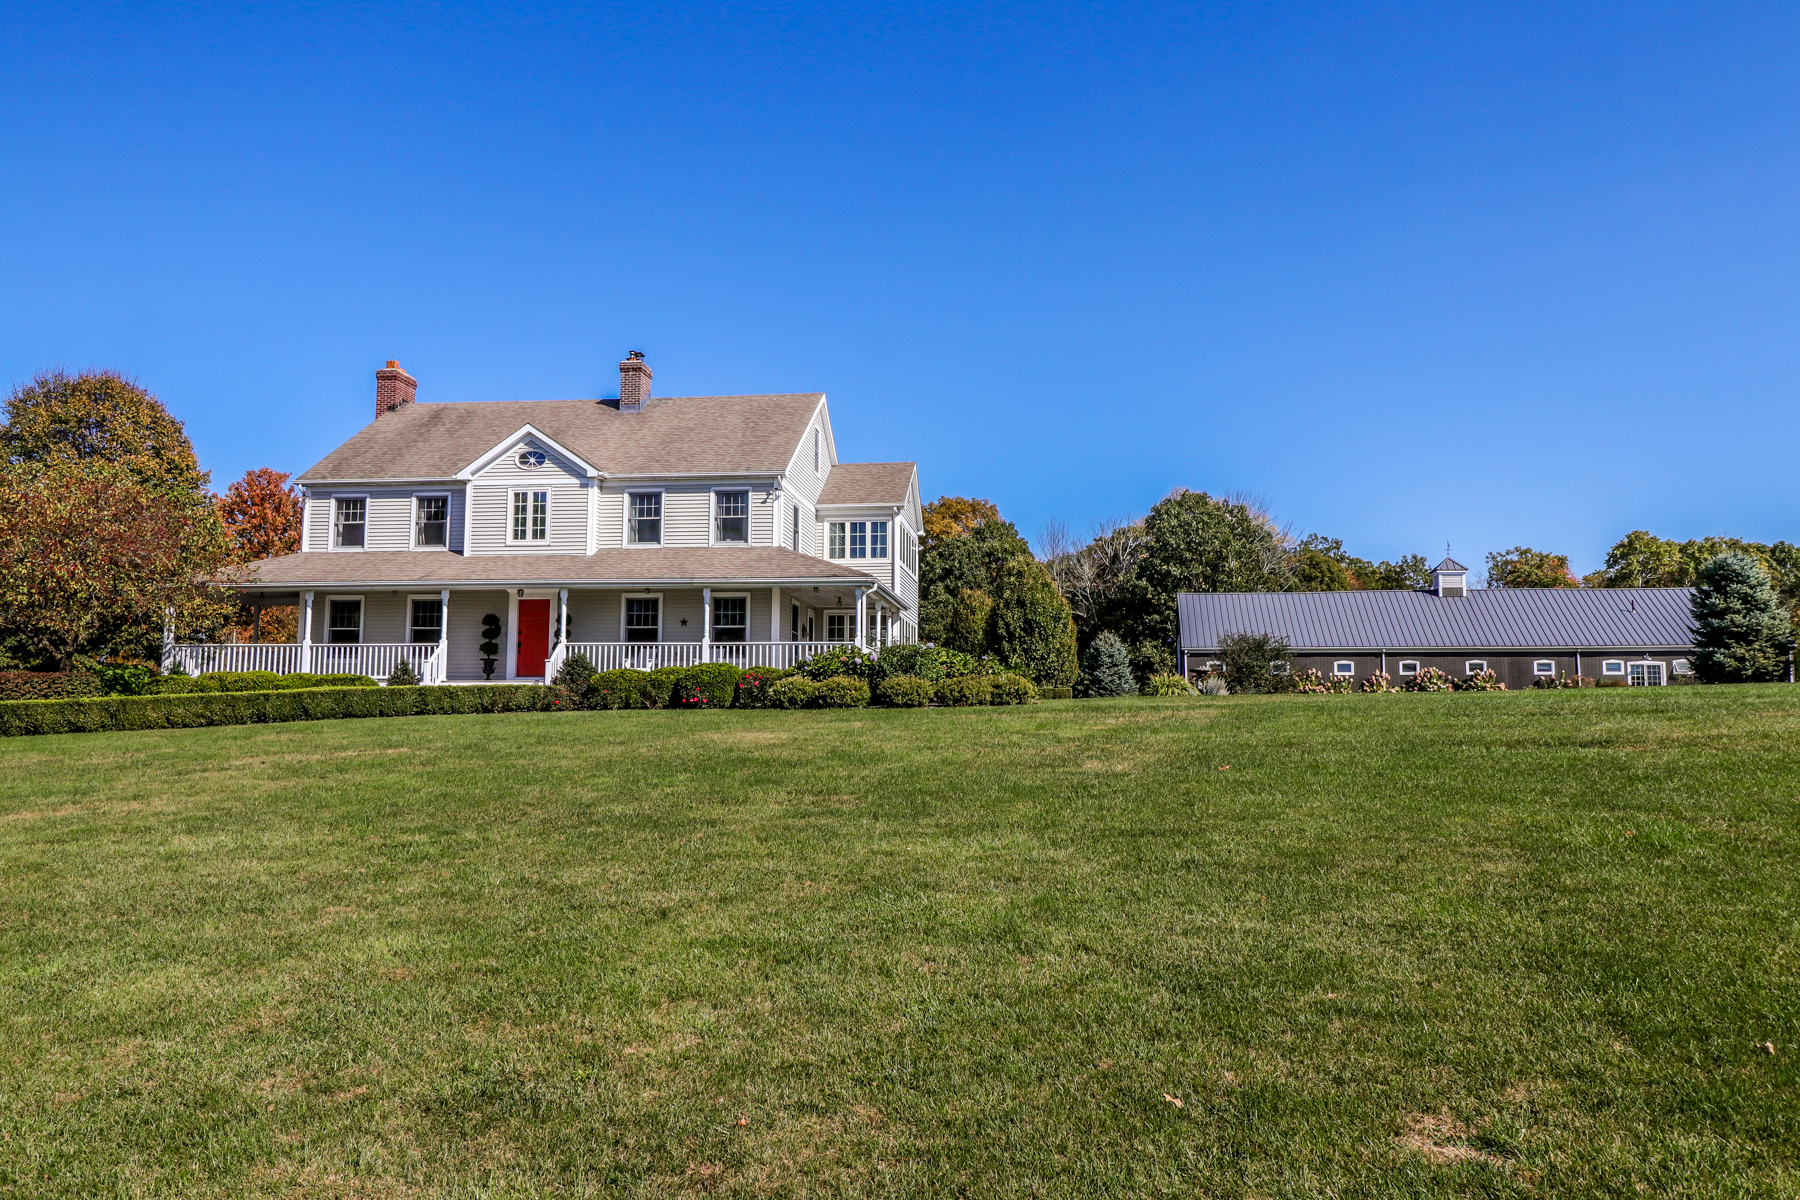 Single Family Homes for Active at Bountiful Equestrian Property 2 Beaver Pond Lane Bridgewater, Connecticut 06752 United States